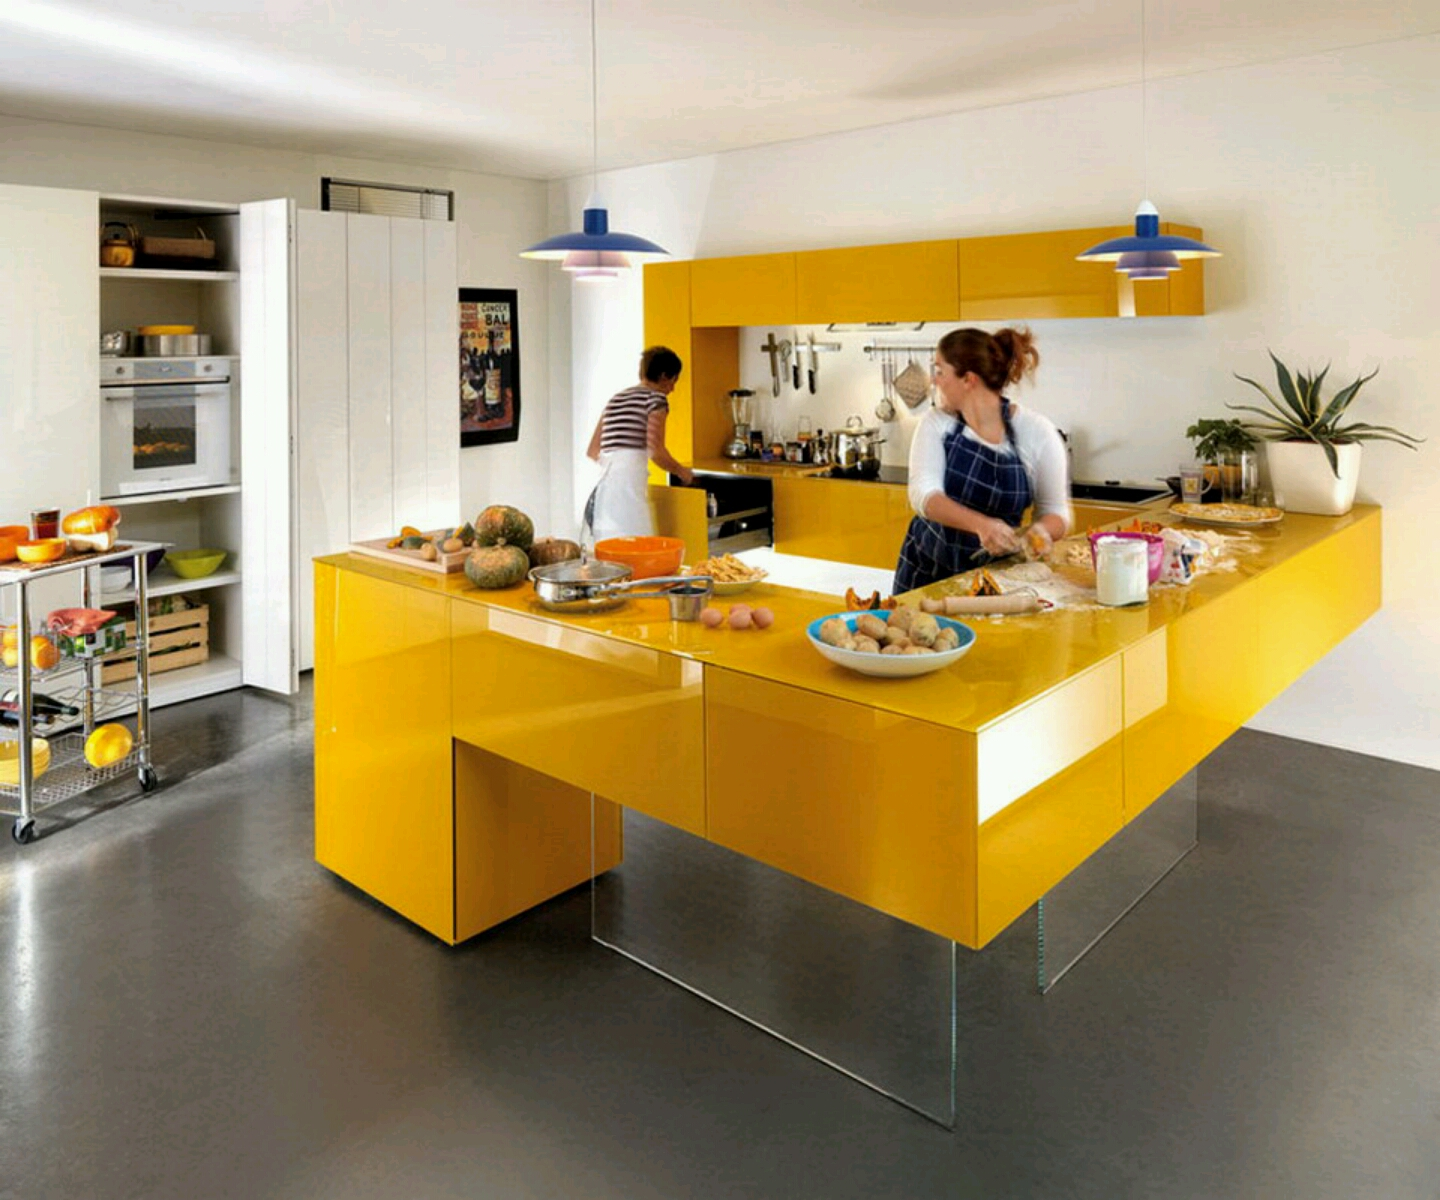 Modern kitchen cabinets designs ideas furniture gallery for New kitchen designs